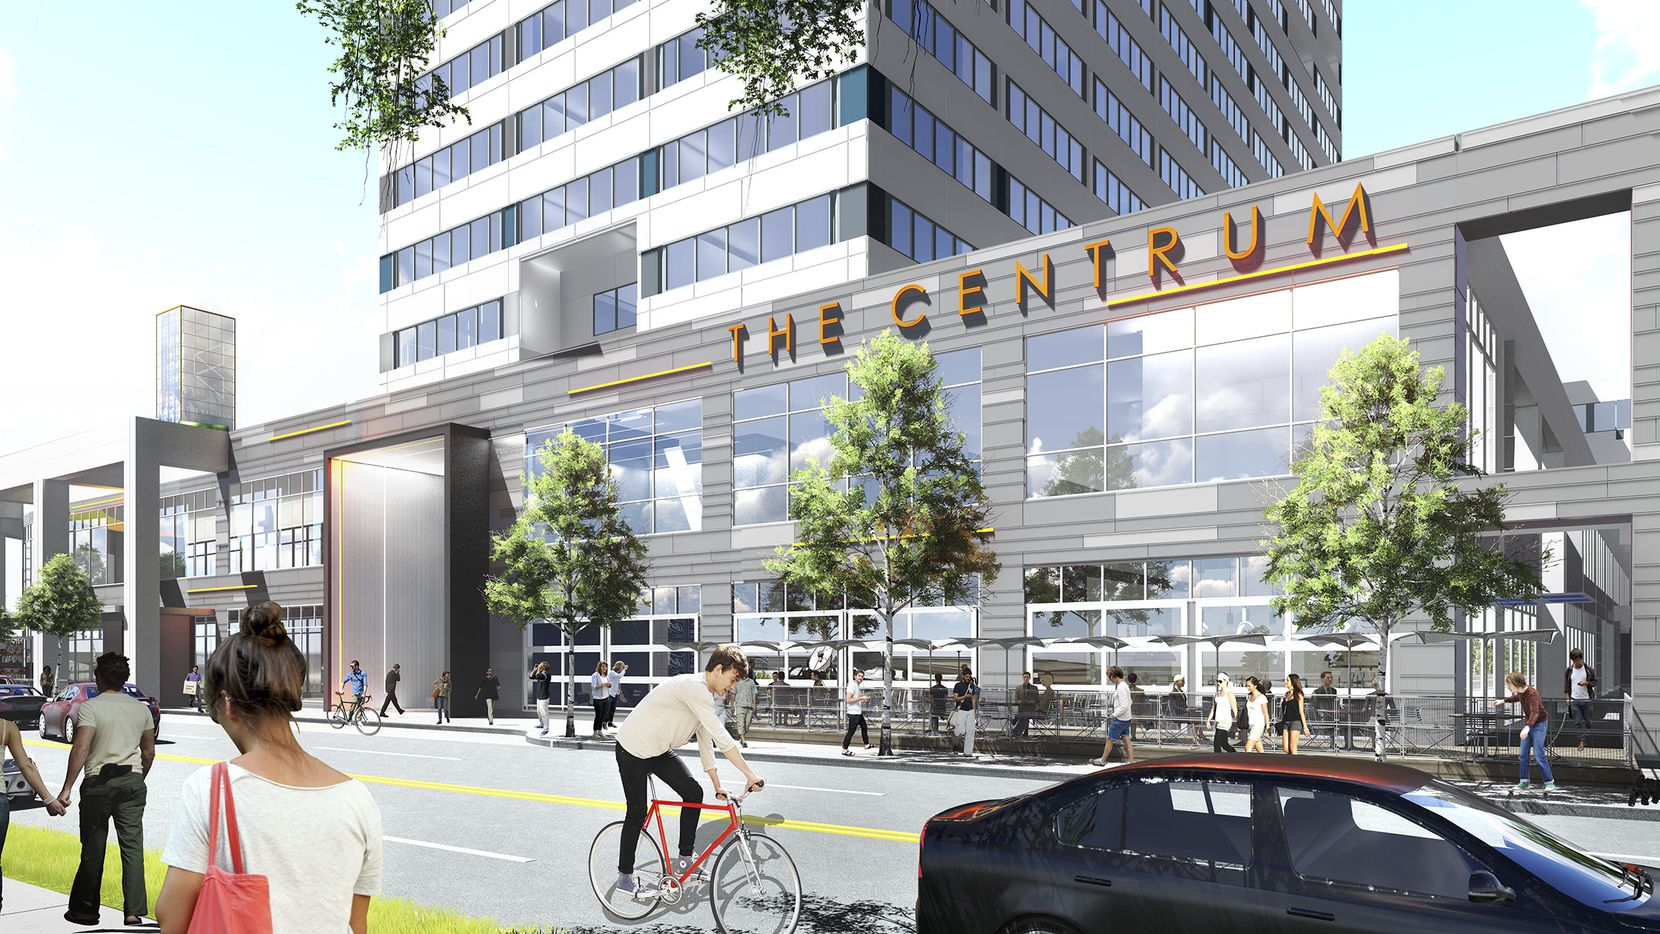 The owners of the Centrum are spending $24 million on upgrades for the Oak Lawn tower.